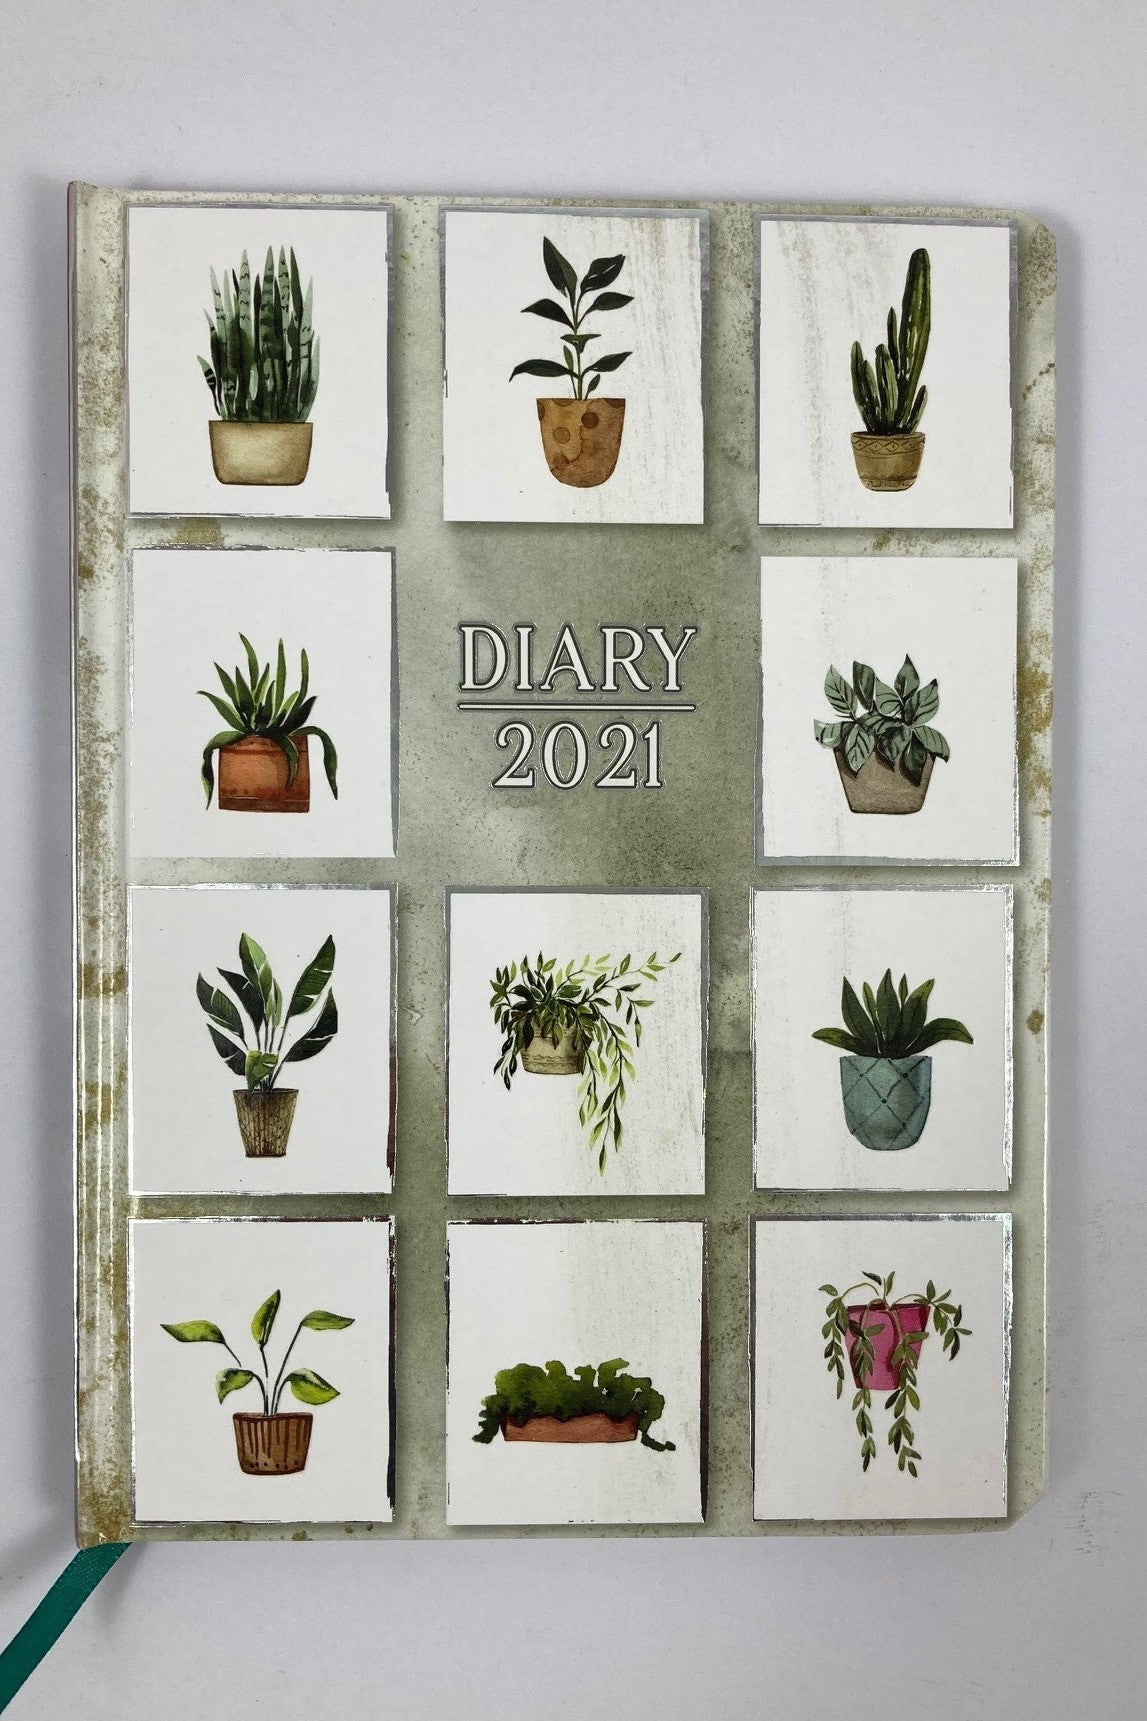 2021 A5 Fashion Diary - Pot Plants